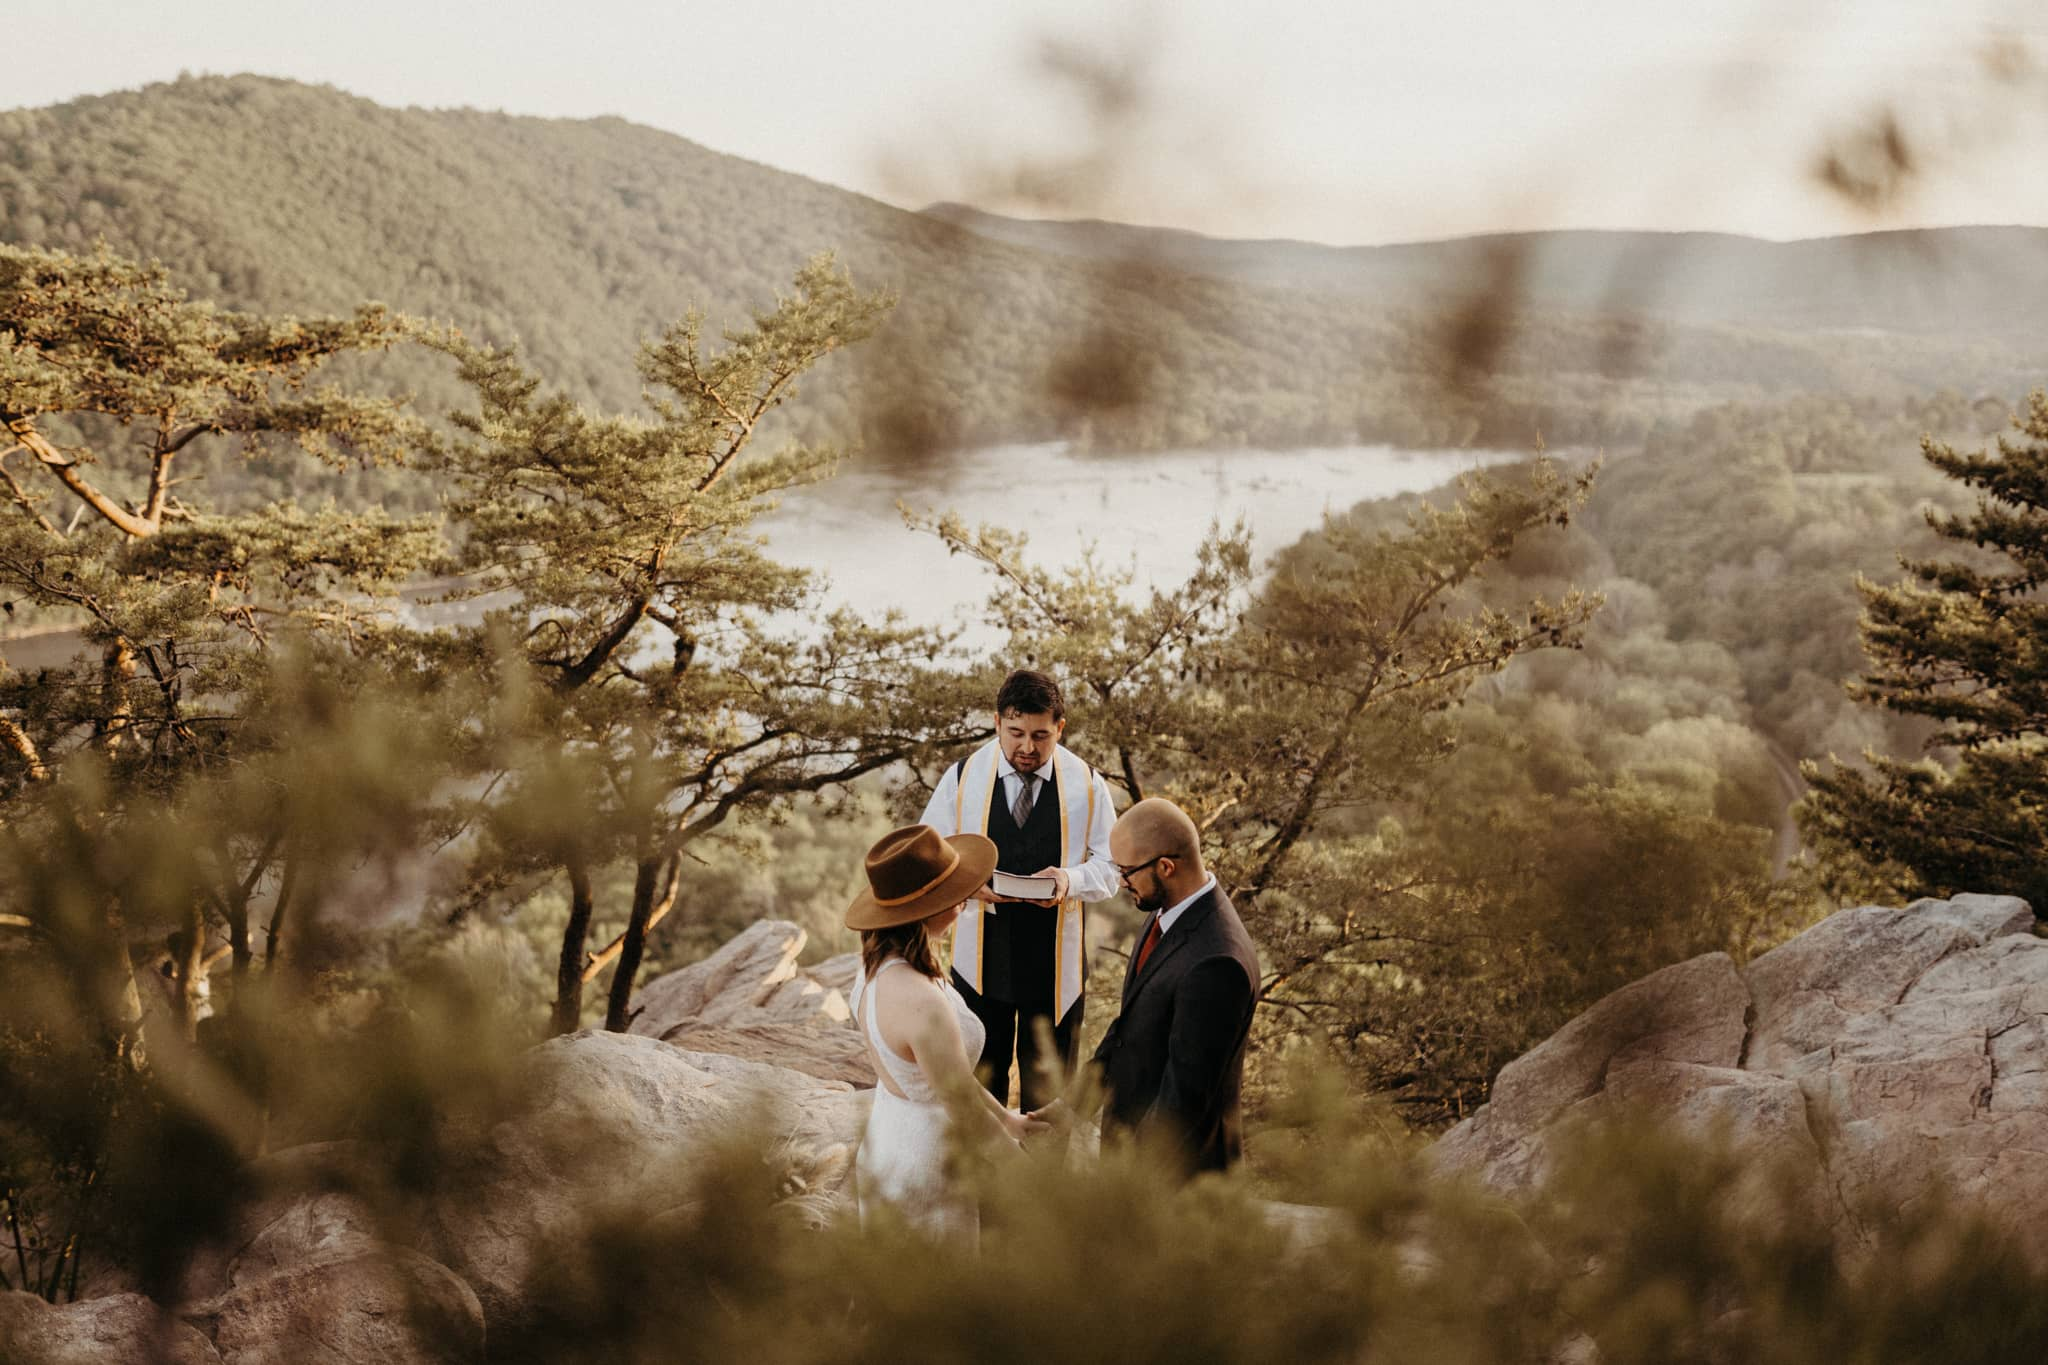 couple gets married in secluded mountain top ceremony. Photo by Victoria Selman.